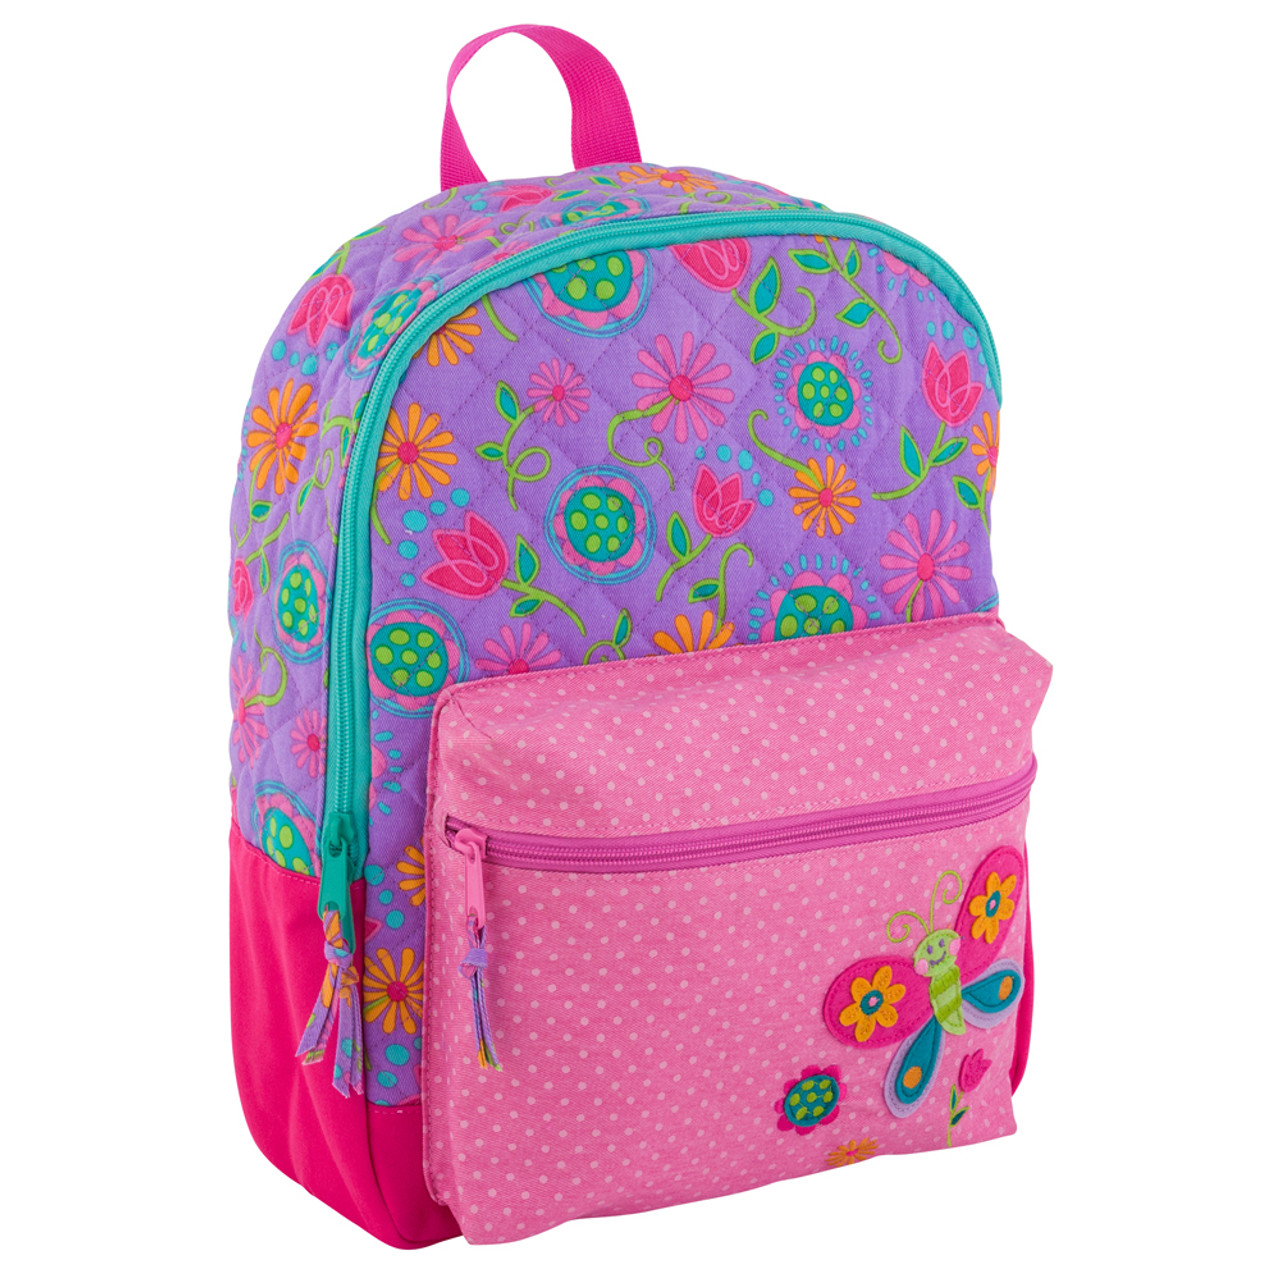 4d1bac7fd5 Stephen Joseph Quilted Butterfly Backpack - Toddler Backpacks